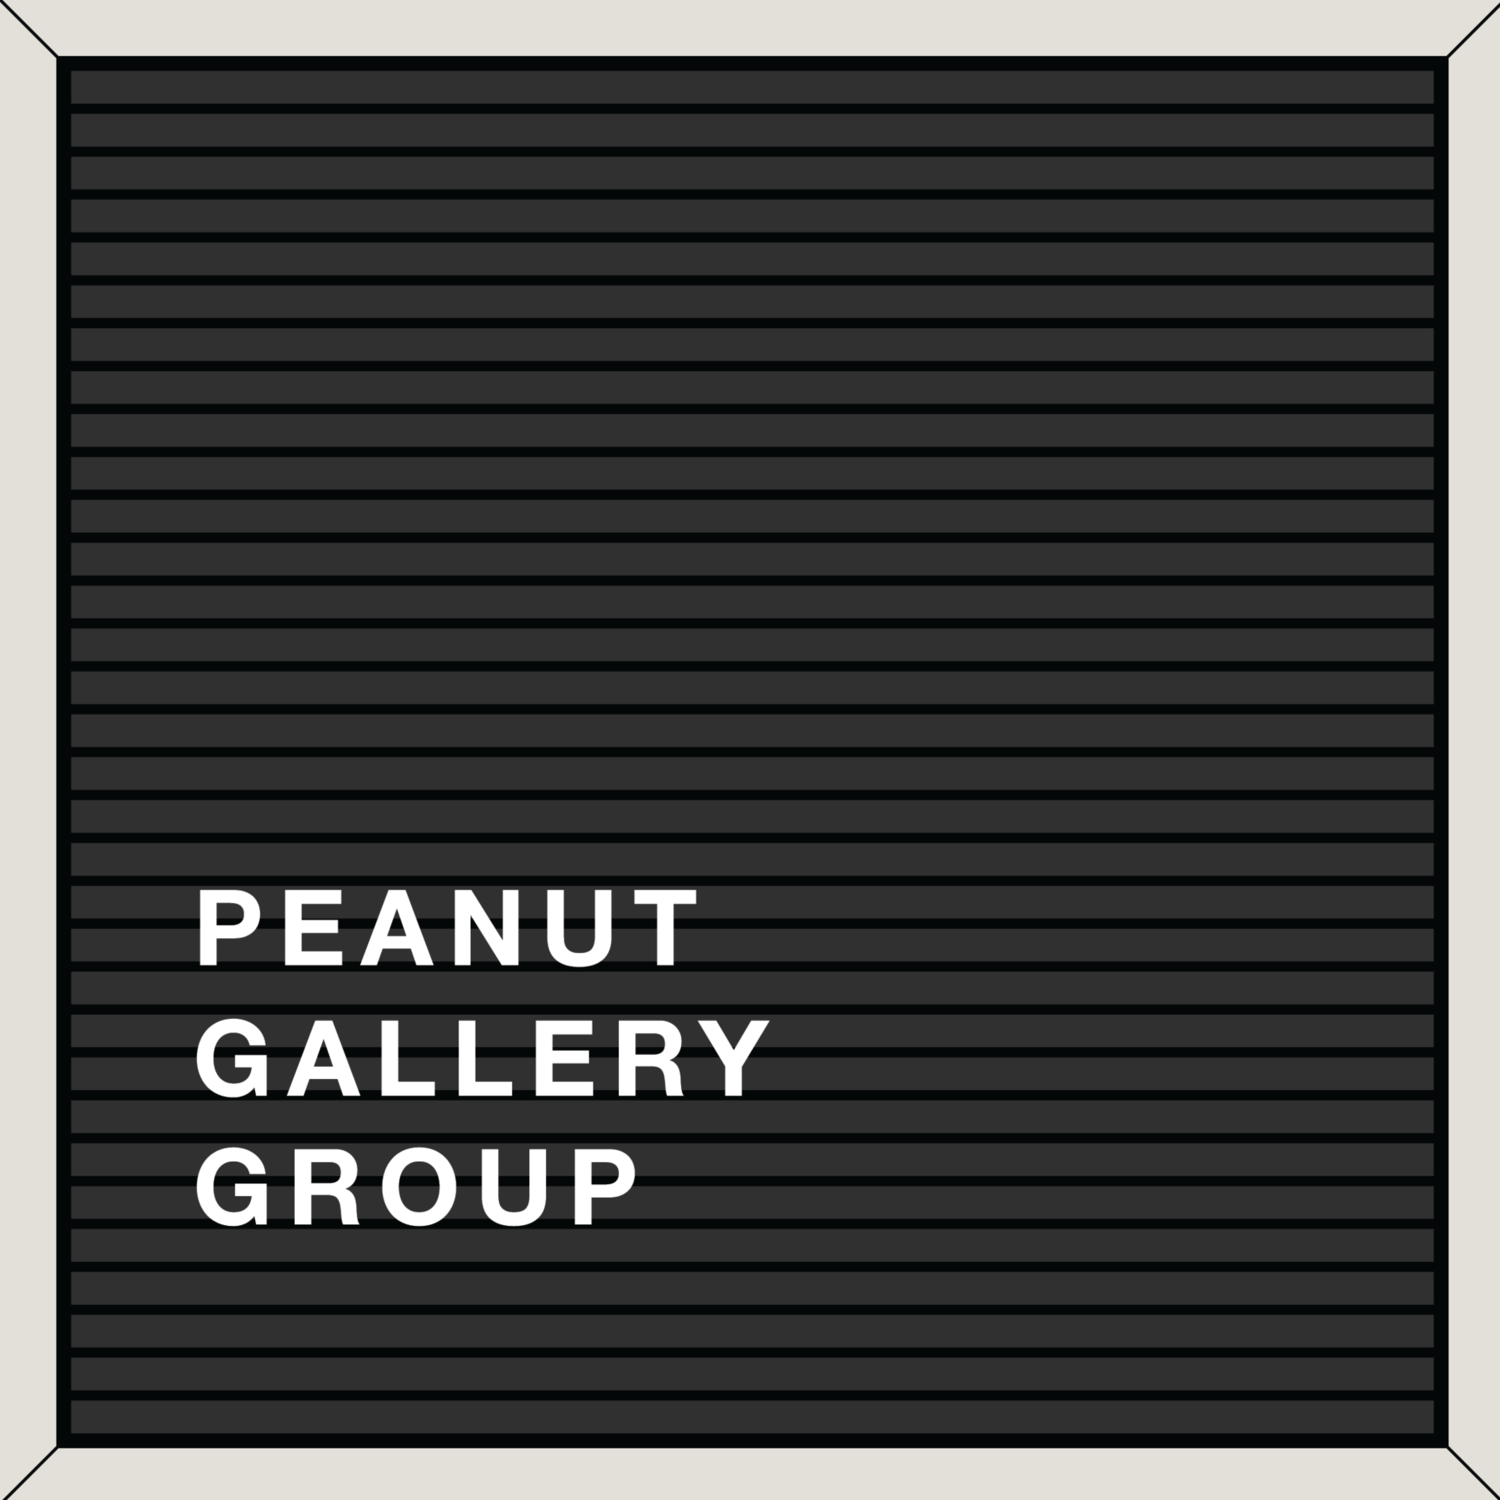 Peanut Gallery Group